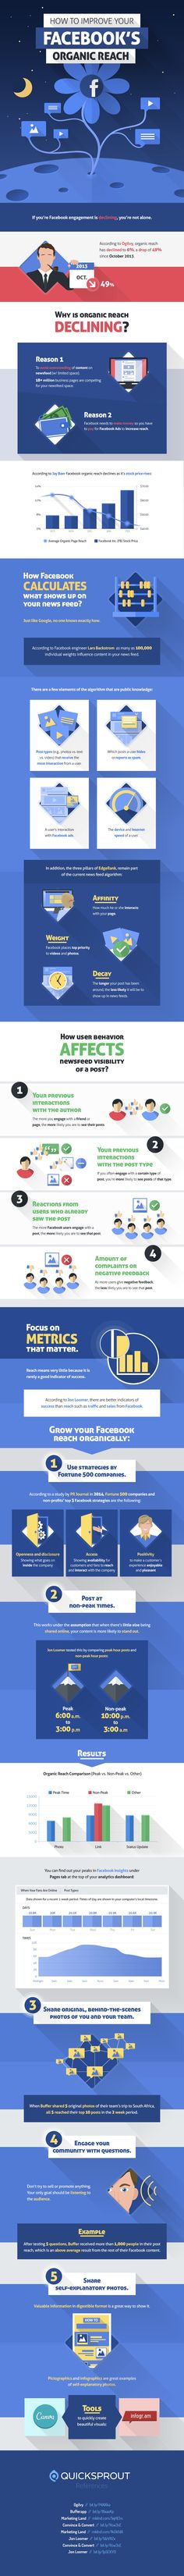 How-to-Improve-Your-Facebook's-Organic-Reach